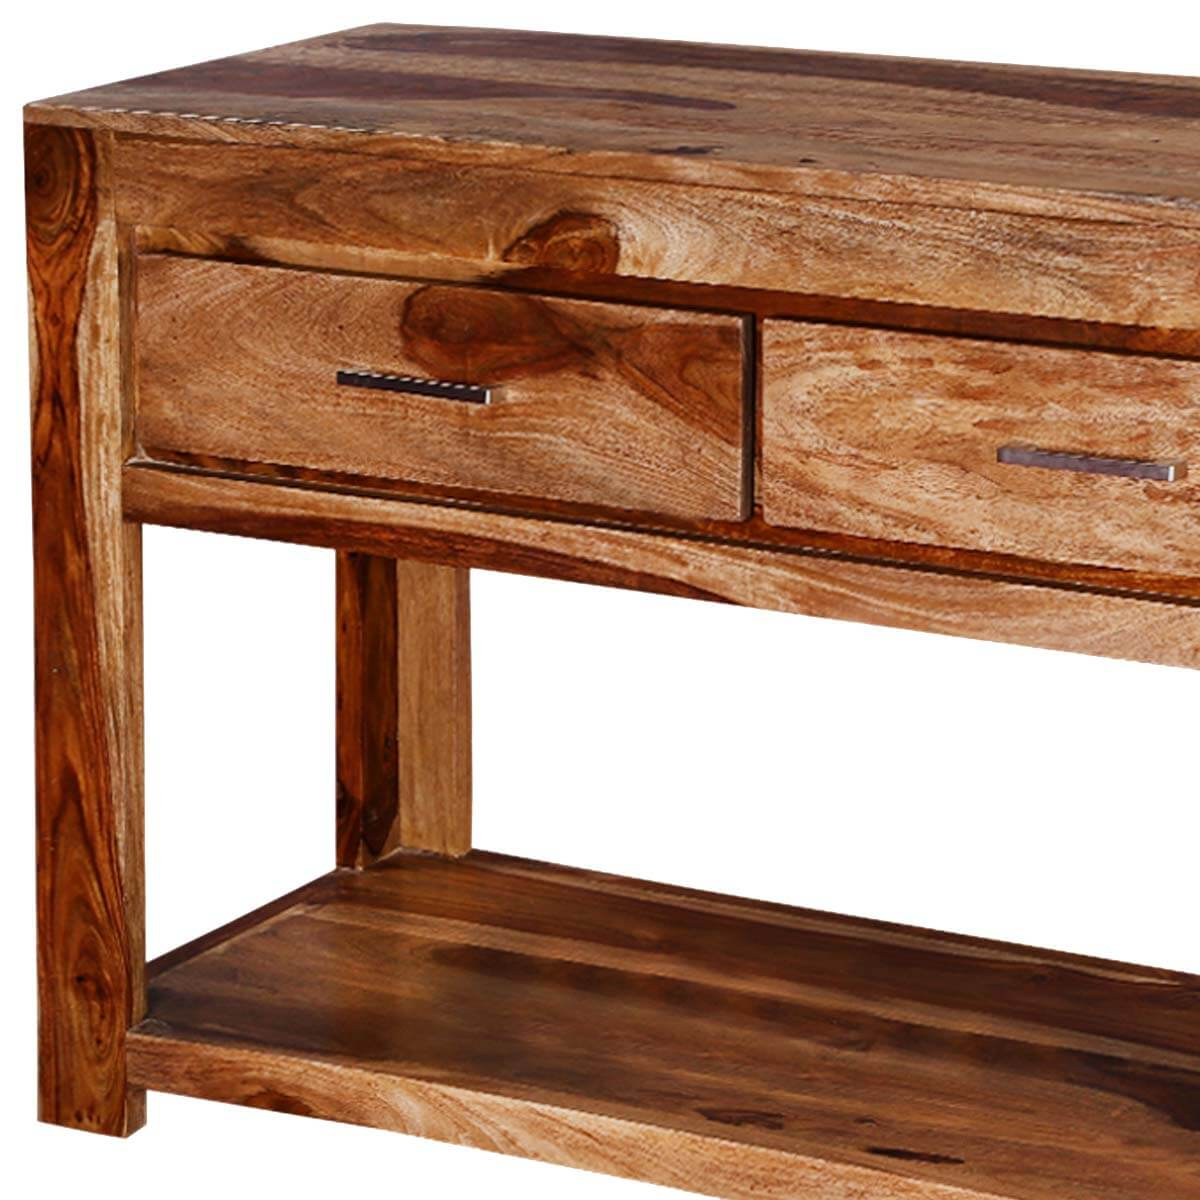 Modern frontier indian rosewood hall console table w drawers - Contemporary console tables with drawers ...